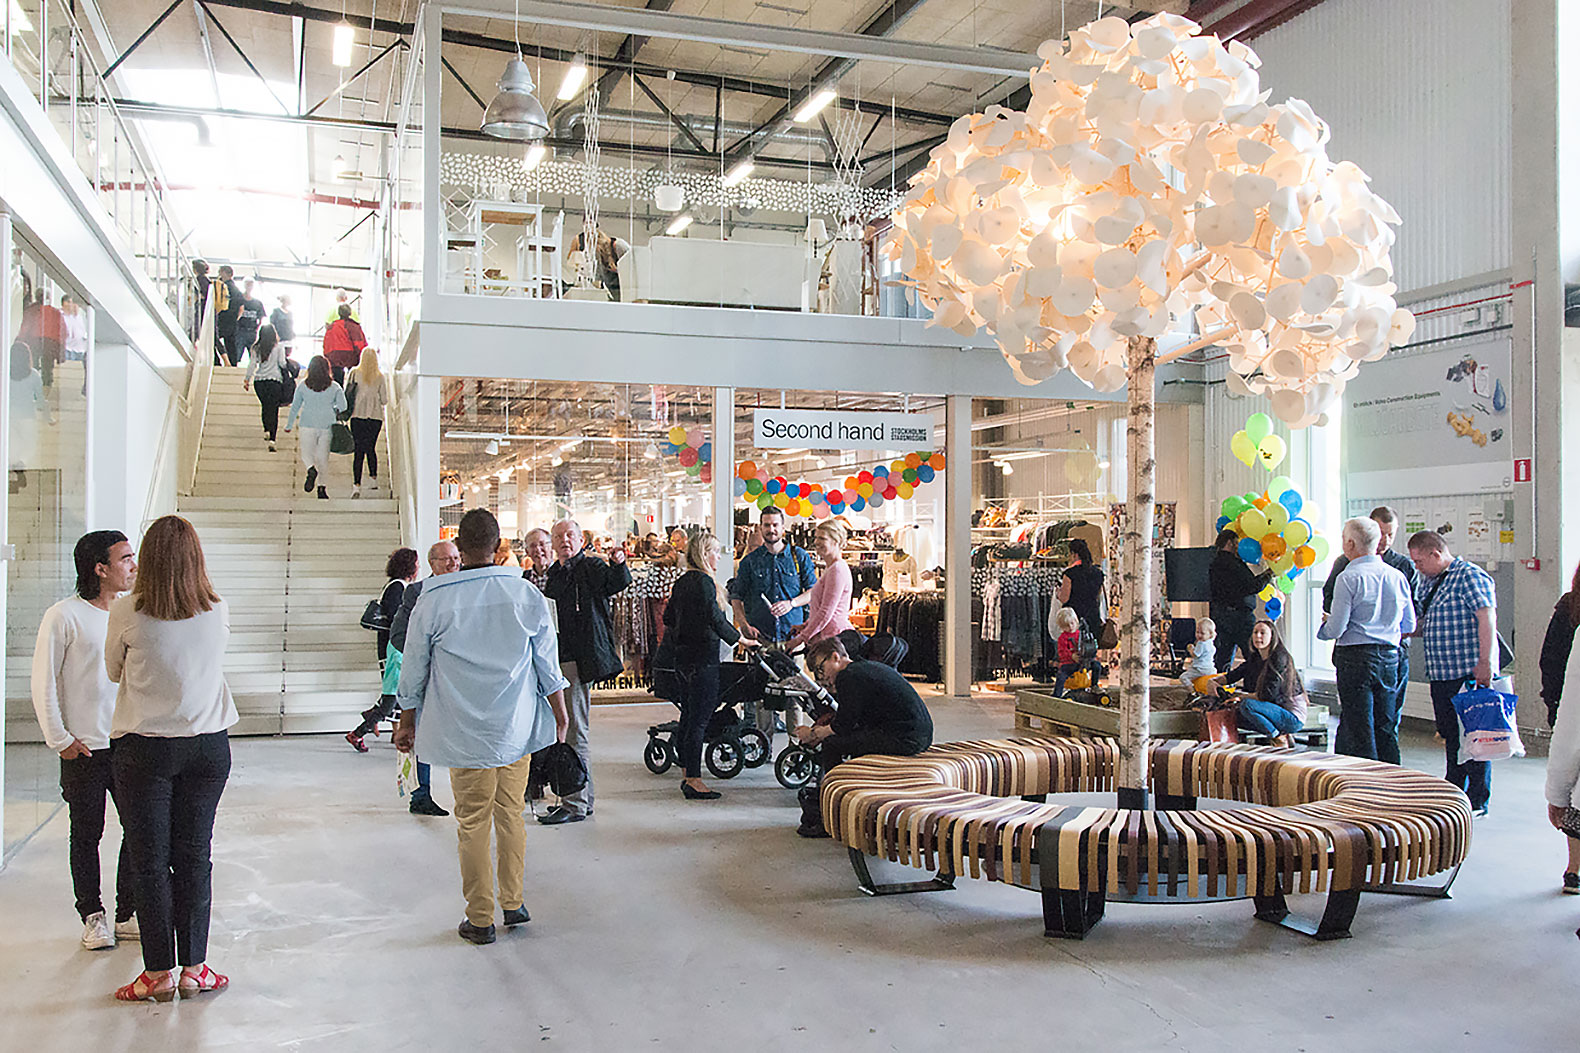 Sweden opens an entire mall full of reclaimed goods